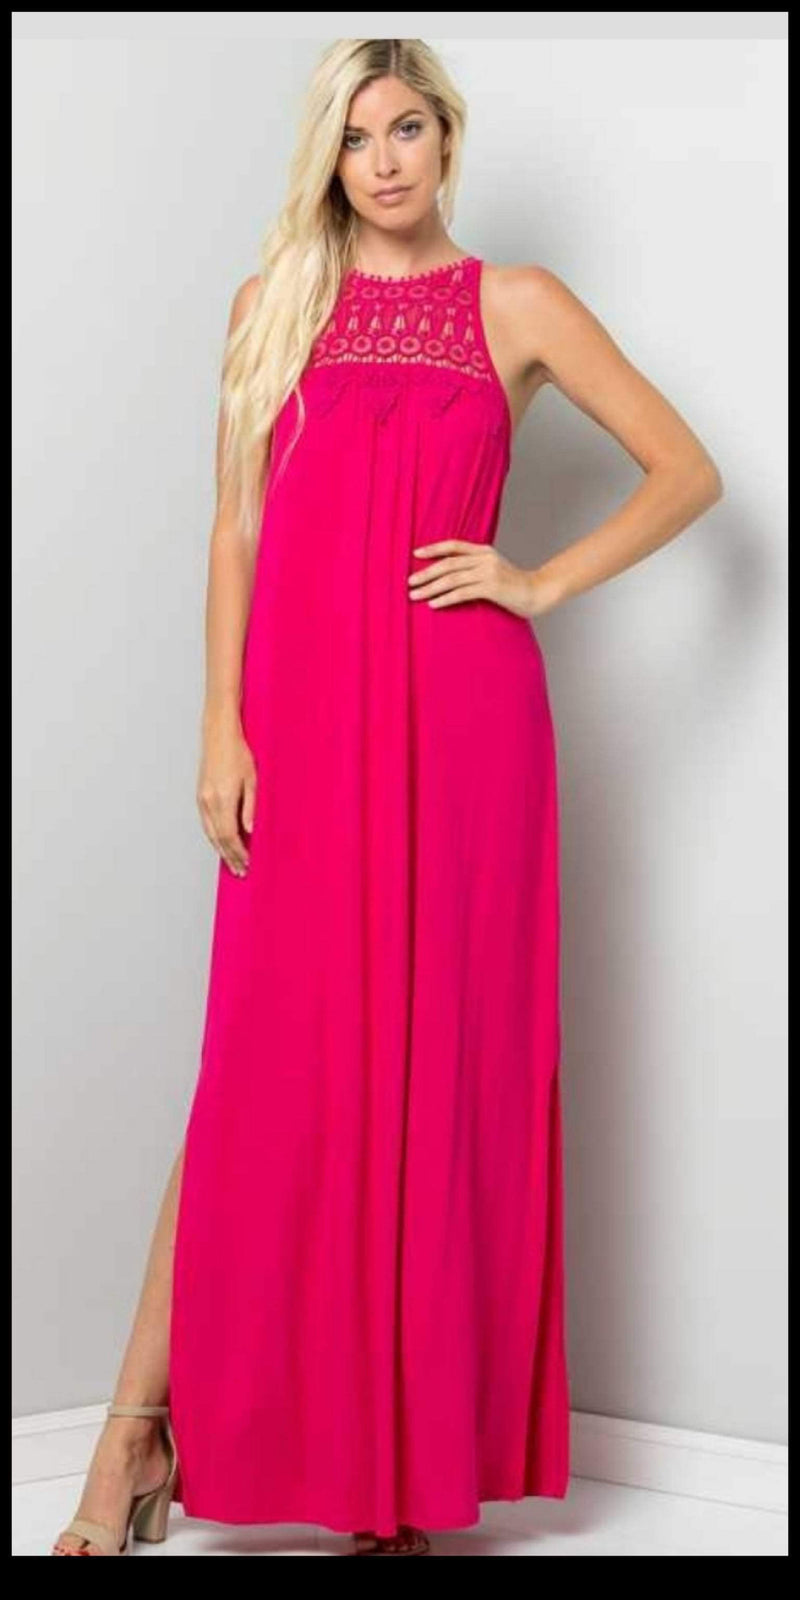 Daytona Hot Pink Maxi Dress